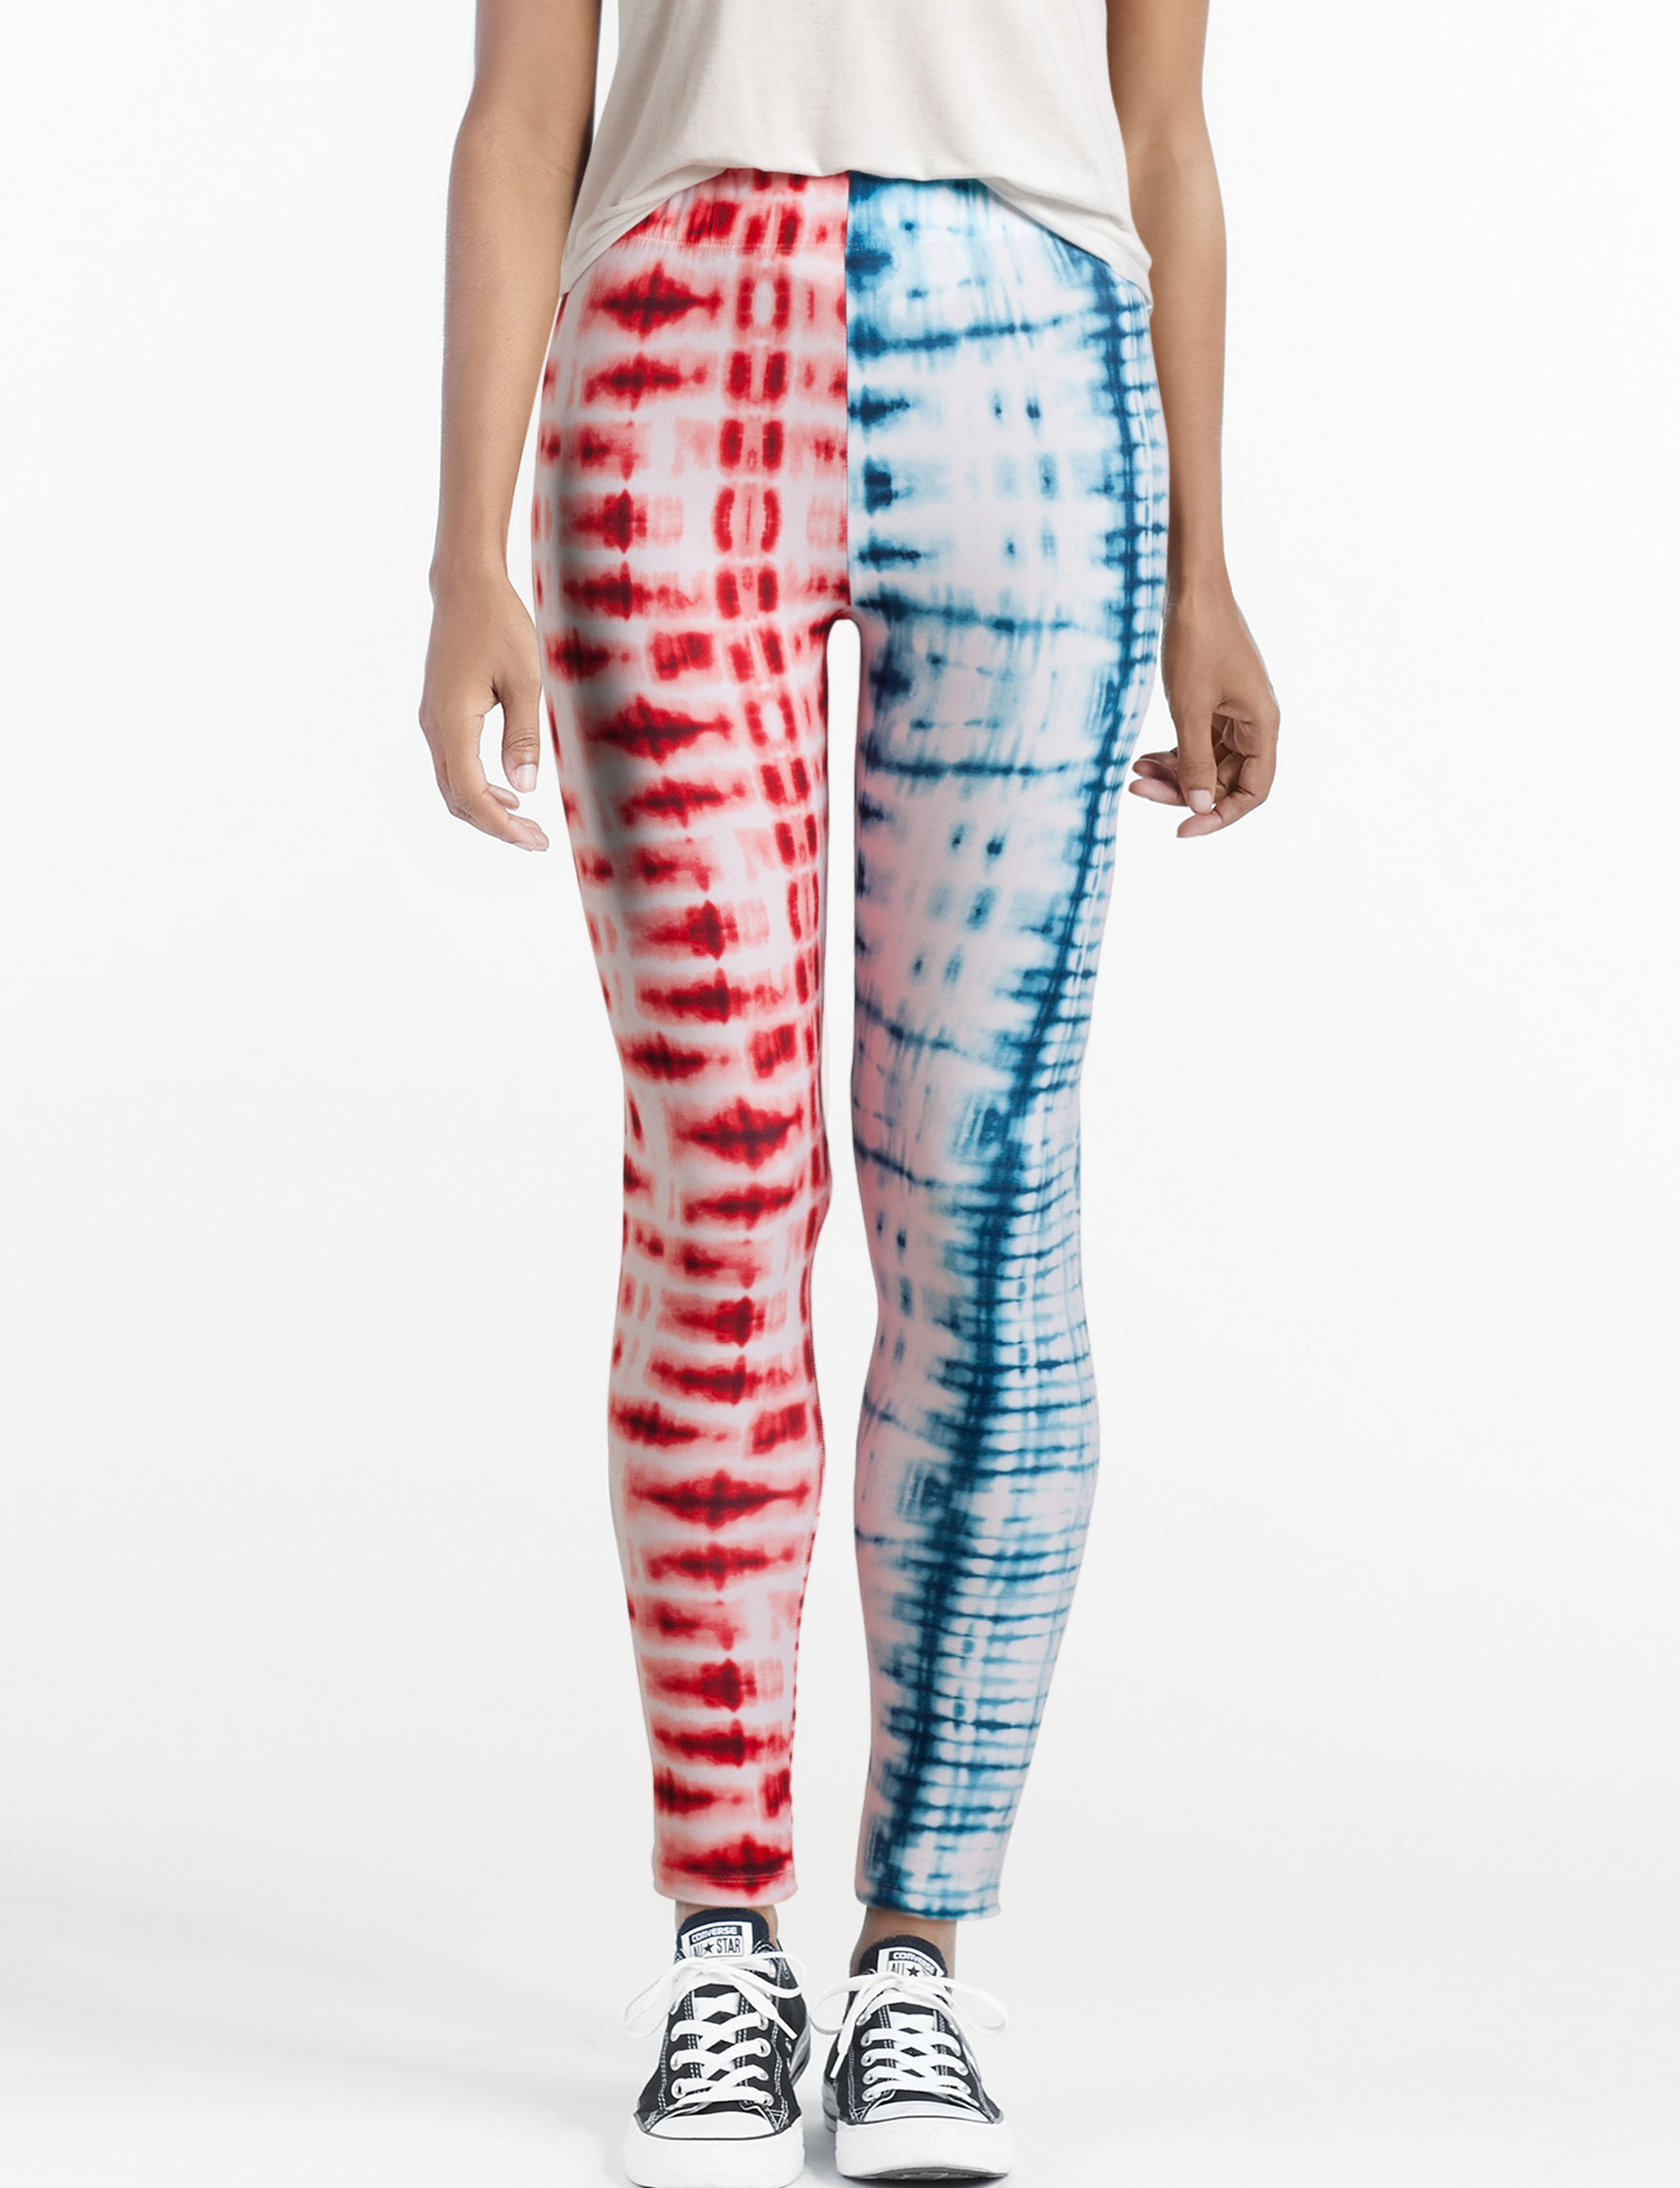 Justify Red White Leggings